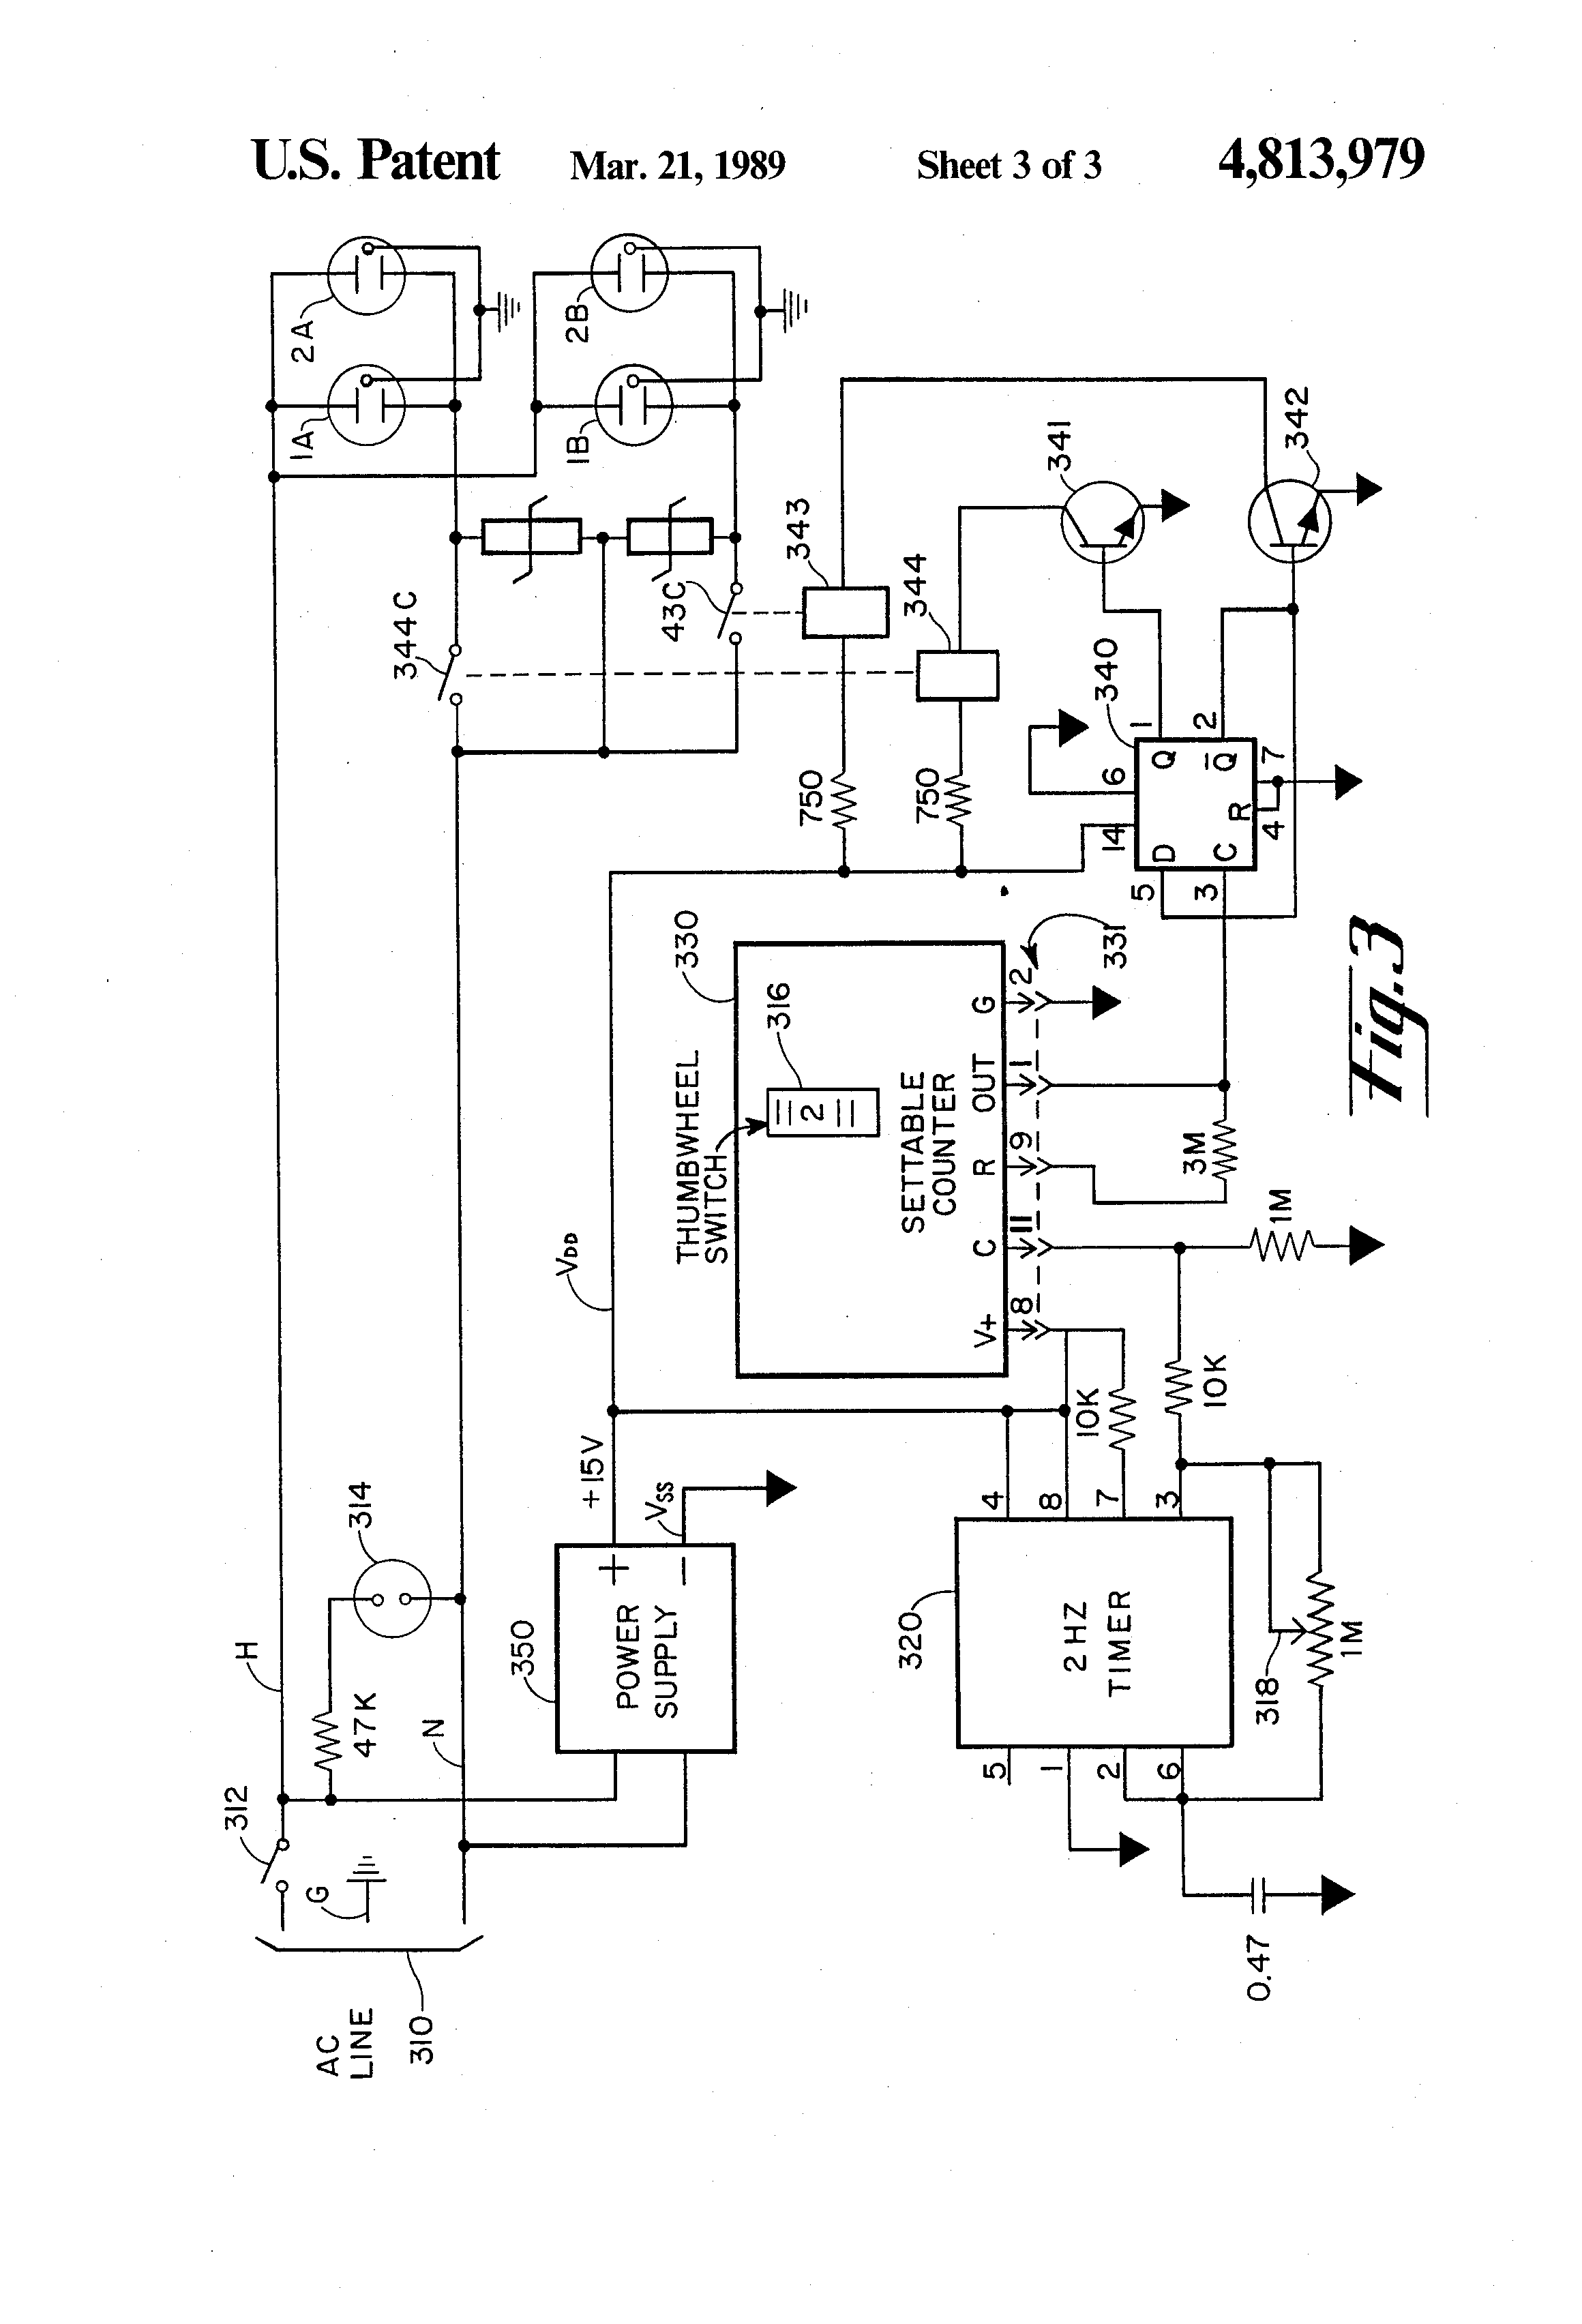 Numatics Valve Wiring Diagram